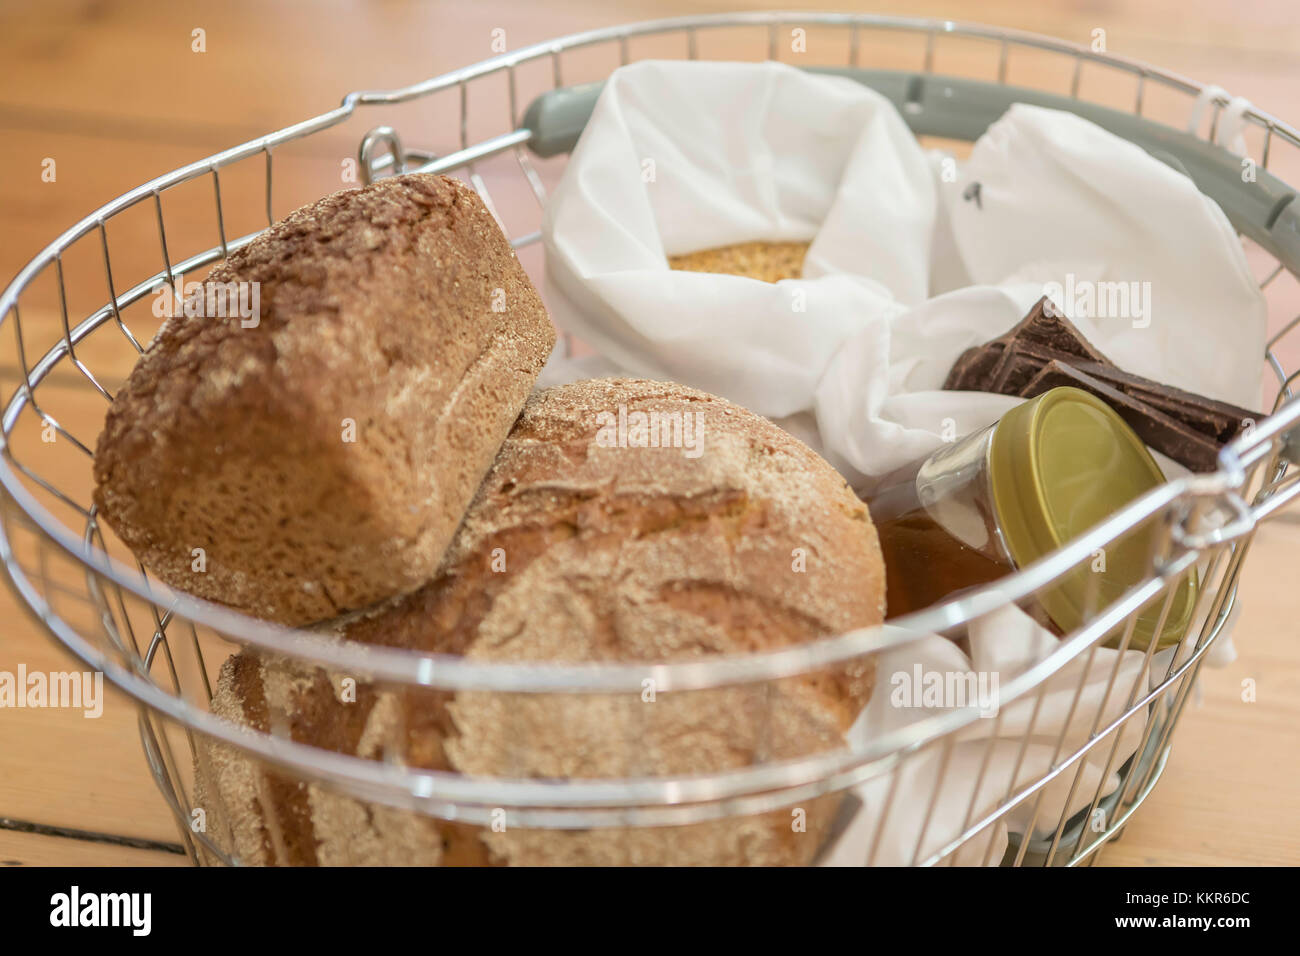 Buying bread and organic food without packaging, in the unpackaged 'Stückgut' shop, Altona, Hamburg, - Stock Image